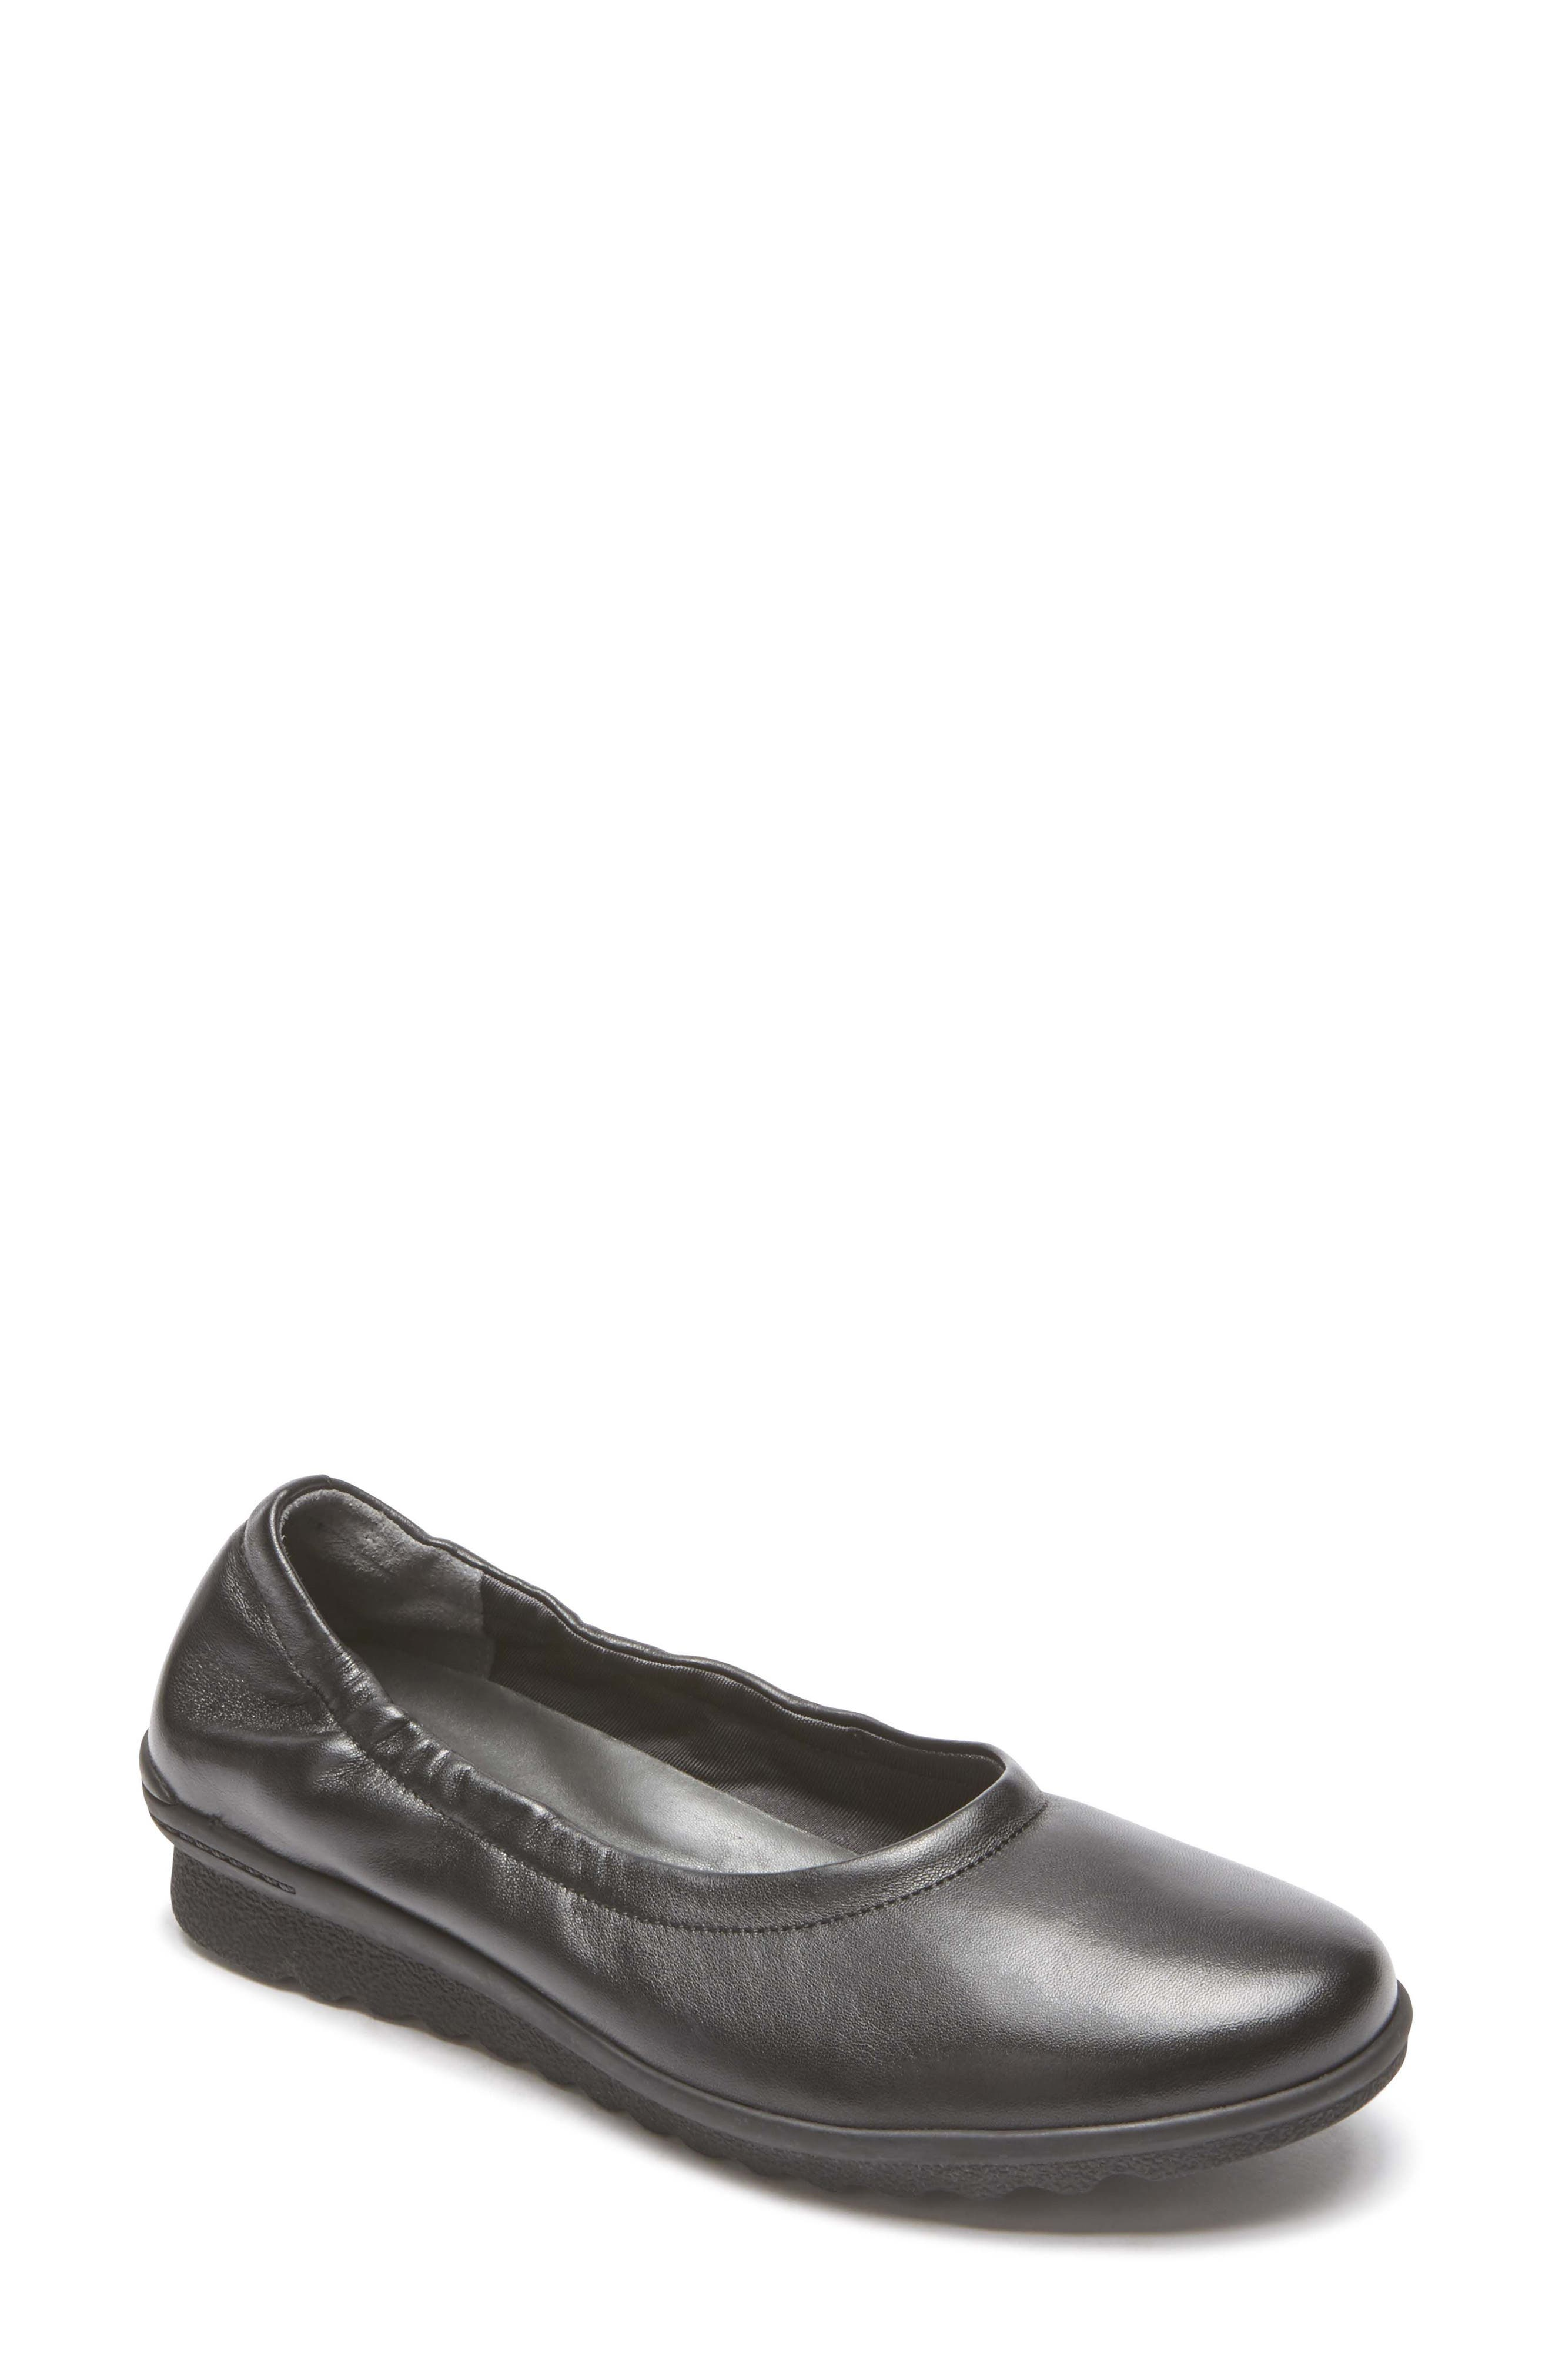 Chenole Ballet Flat,                             Main thumbnail 1, color,                             BLACK LEATHER